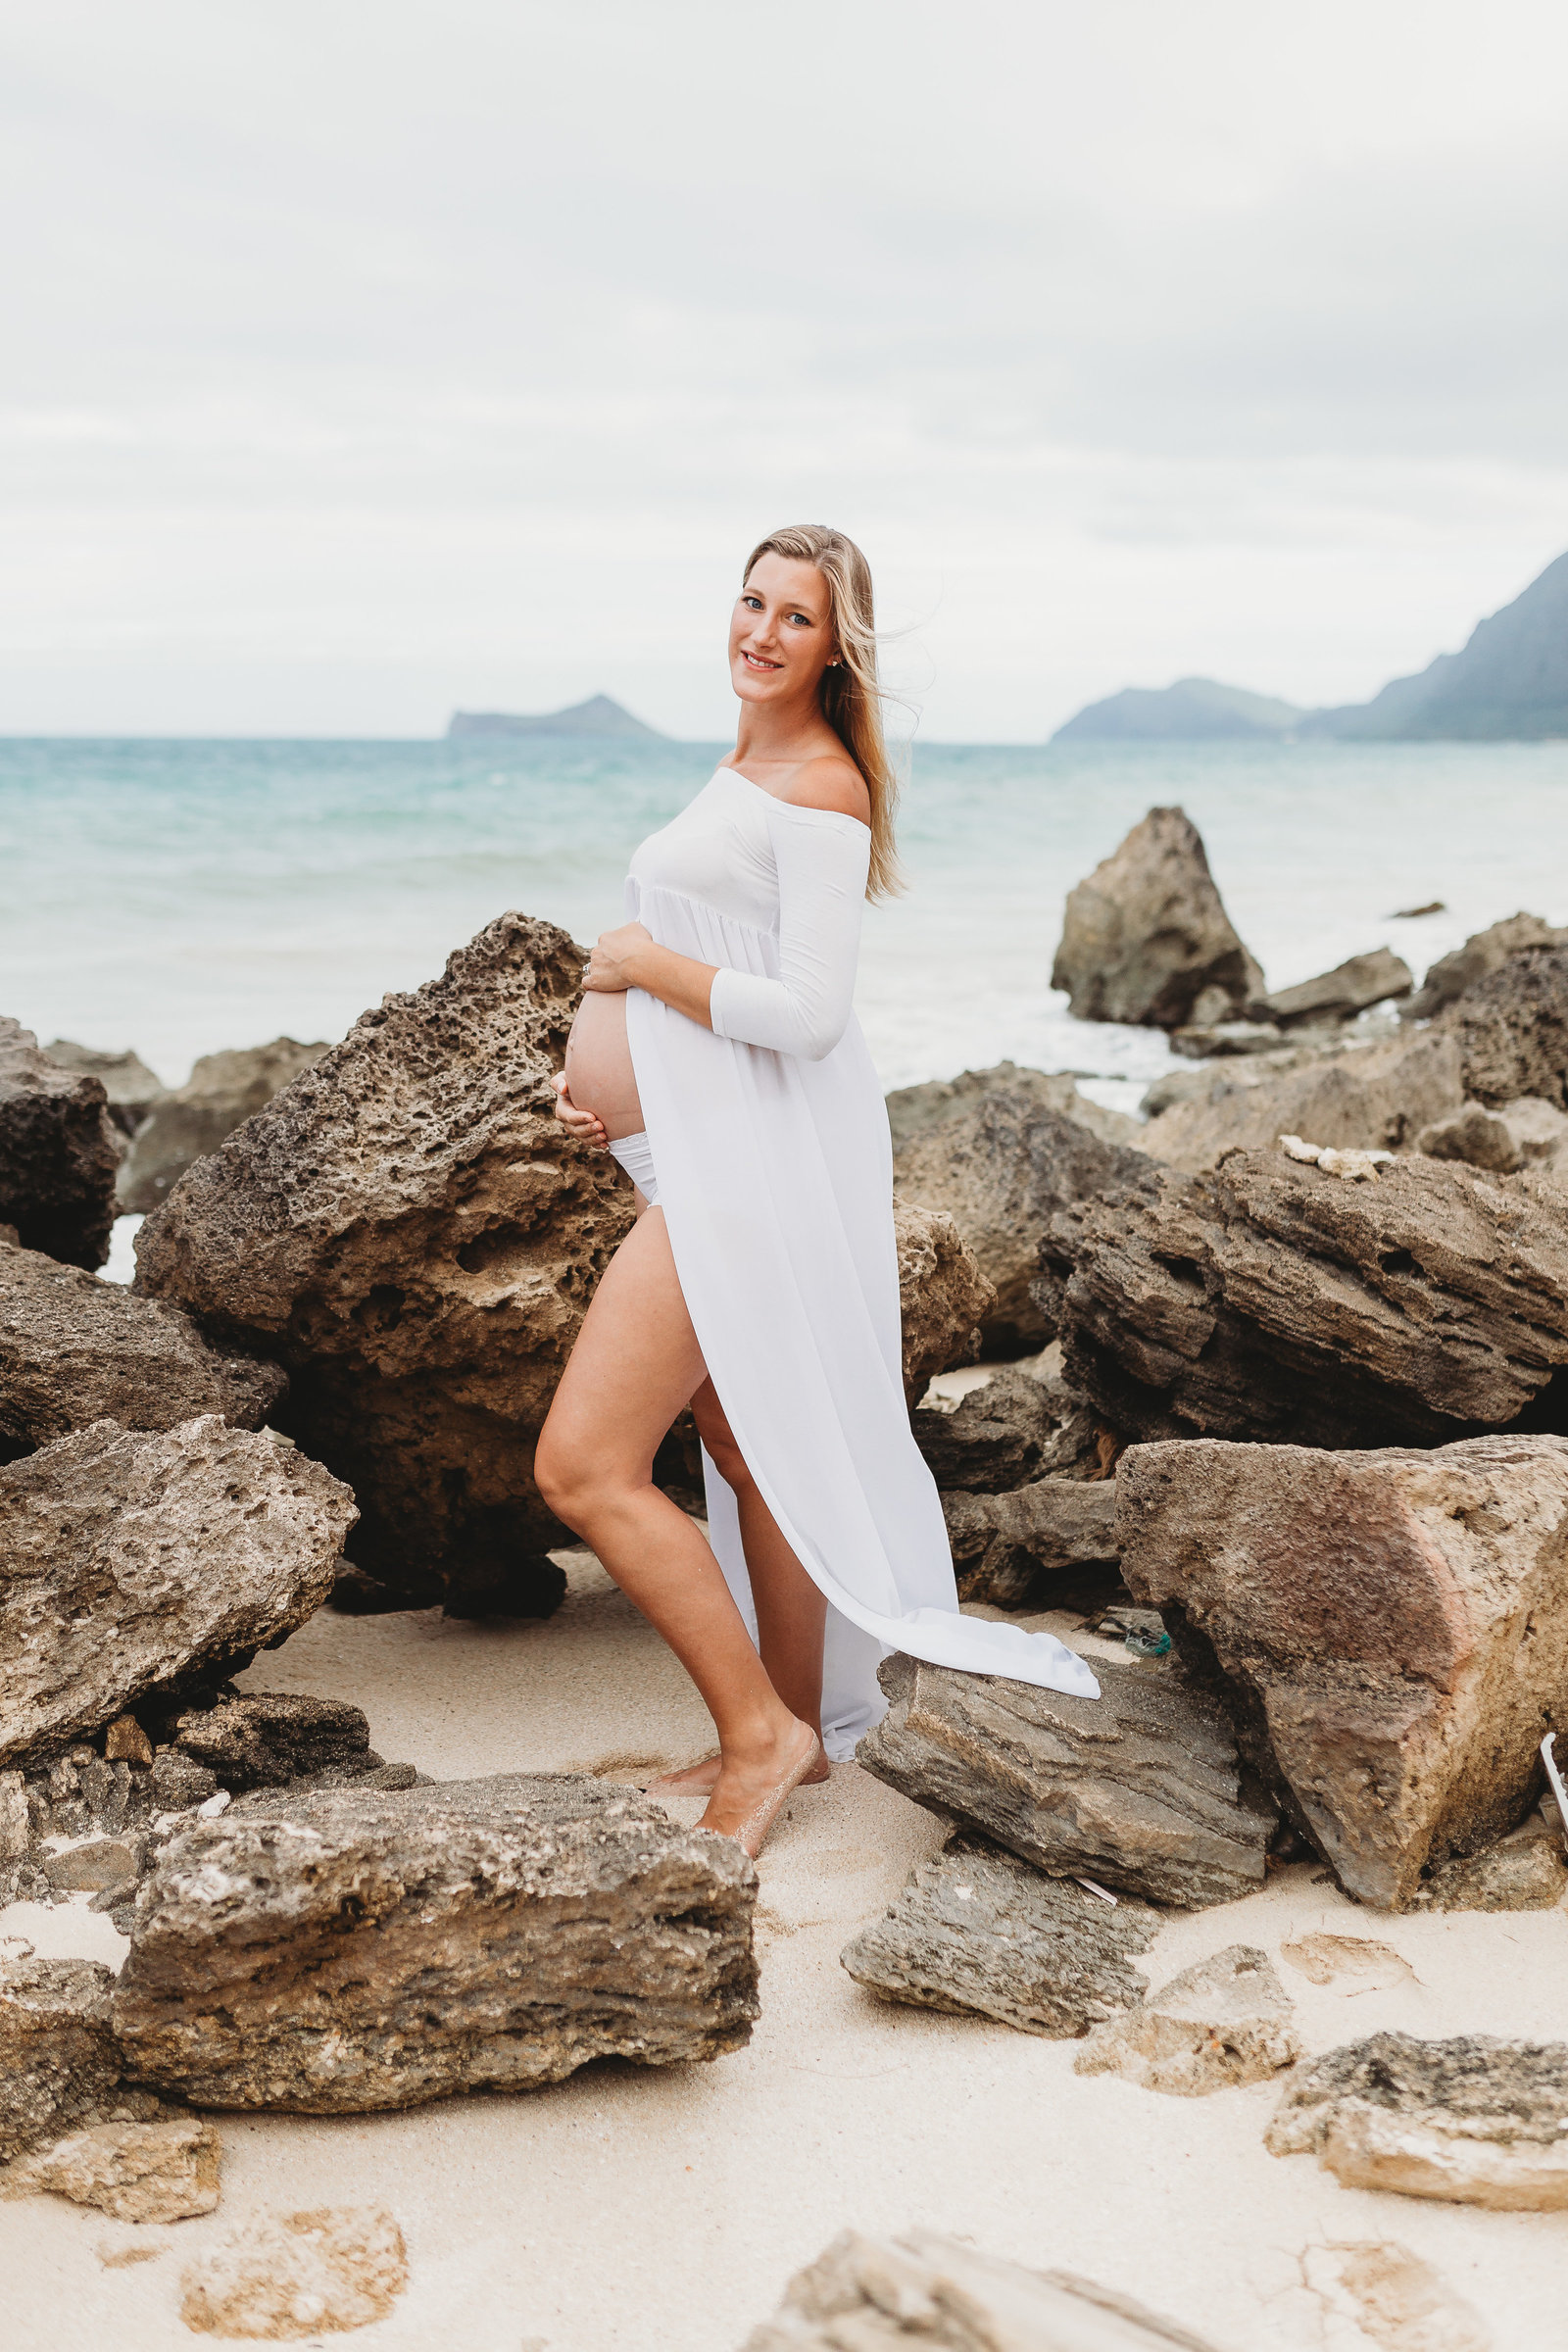 Maternity Photography Shoot - Pregnant Girl on Beach standing with Rocks - Honolulu, Oahu, Hawaii - Brooke Flanagan Maternity Photographer